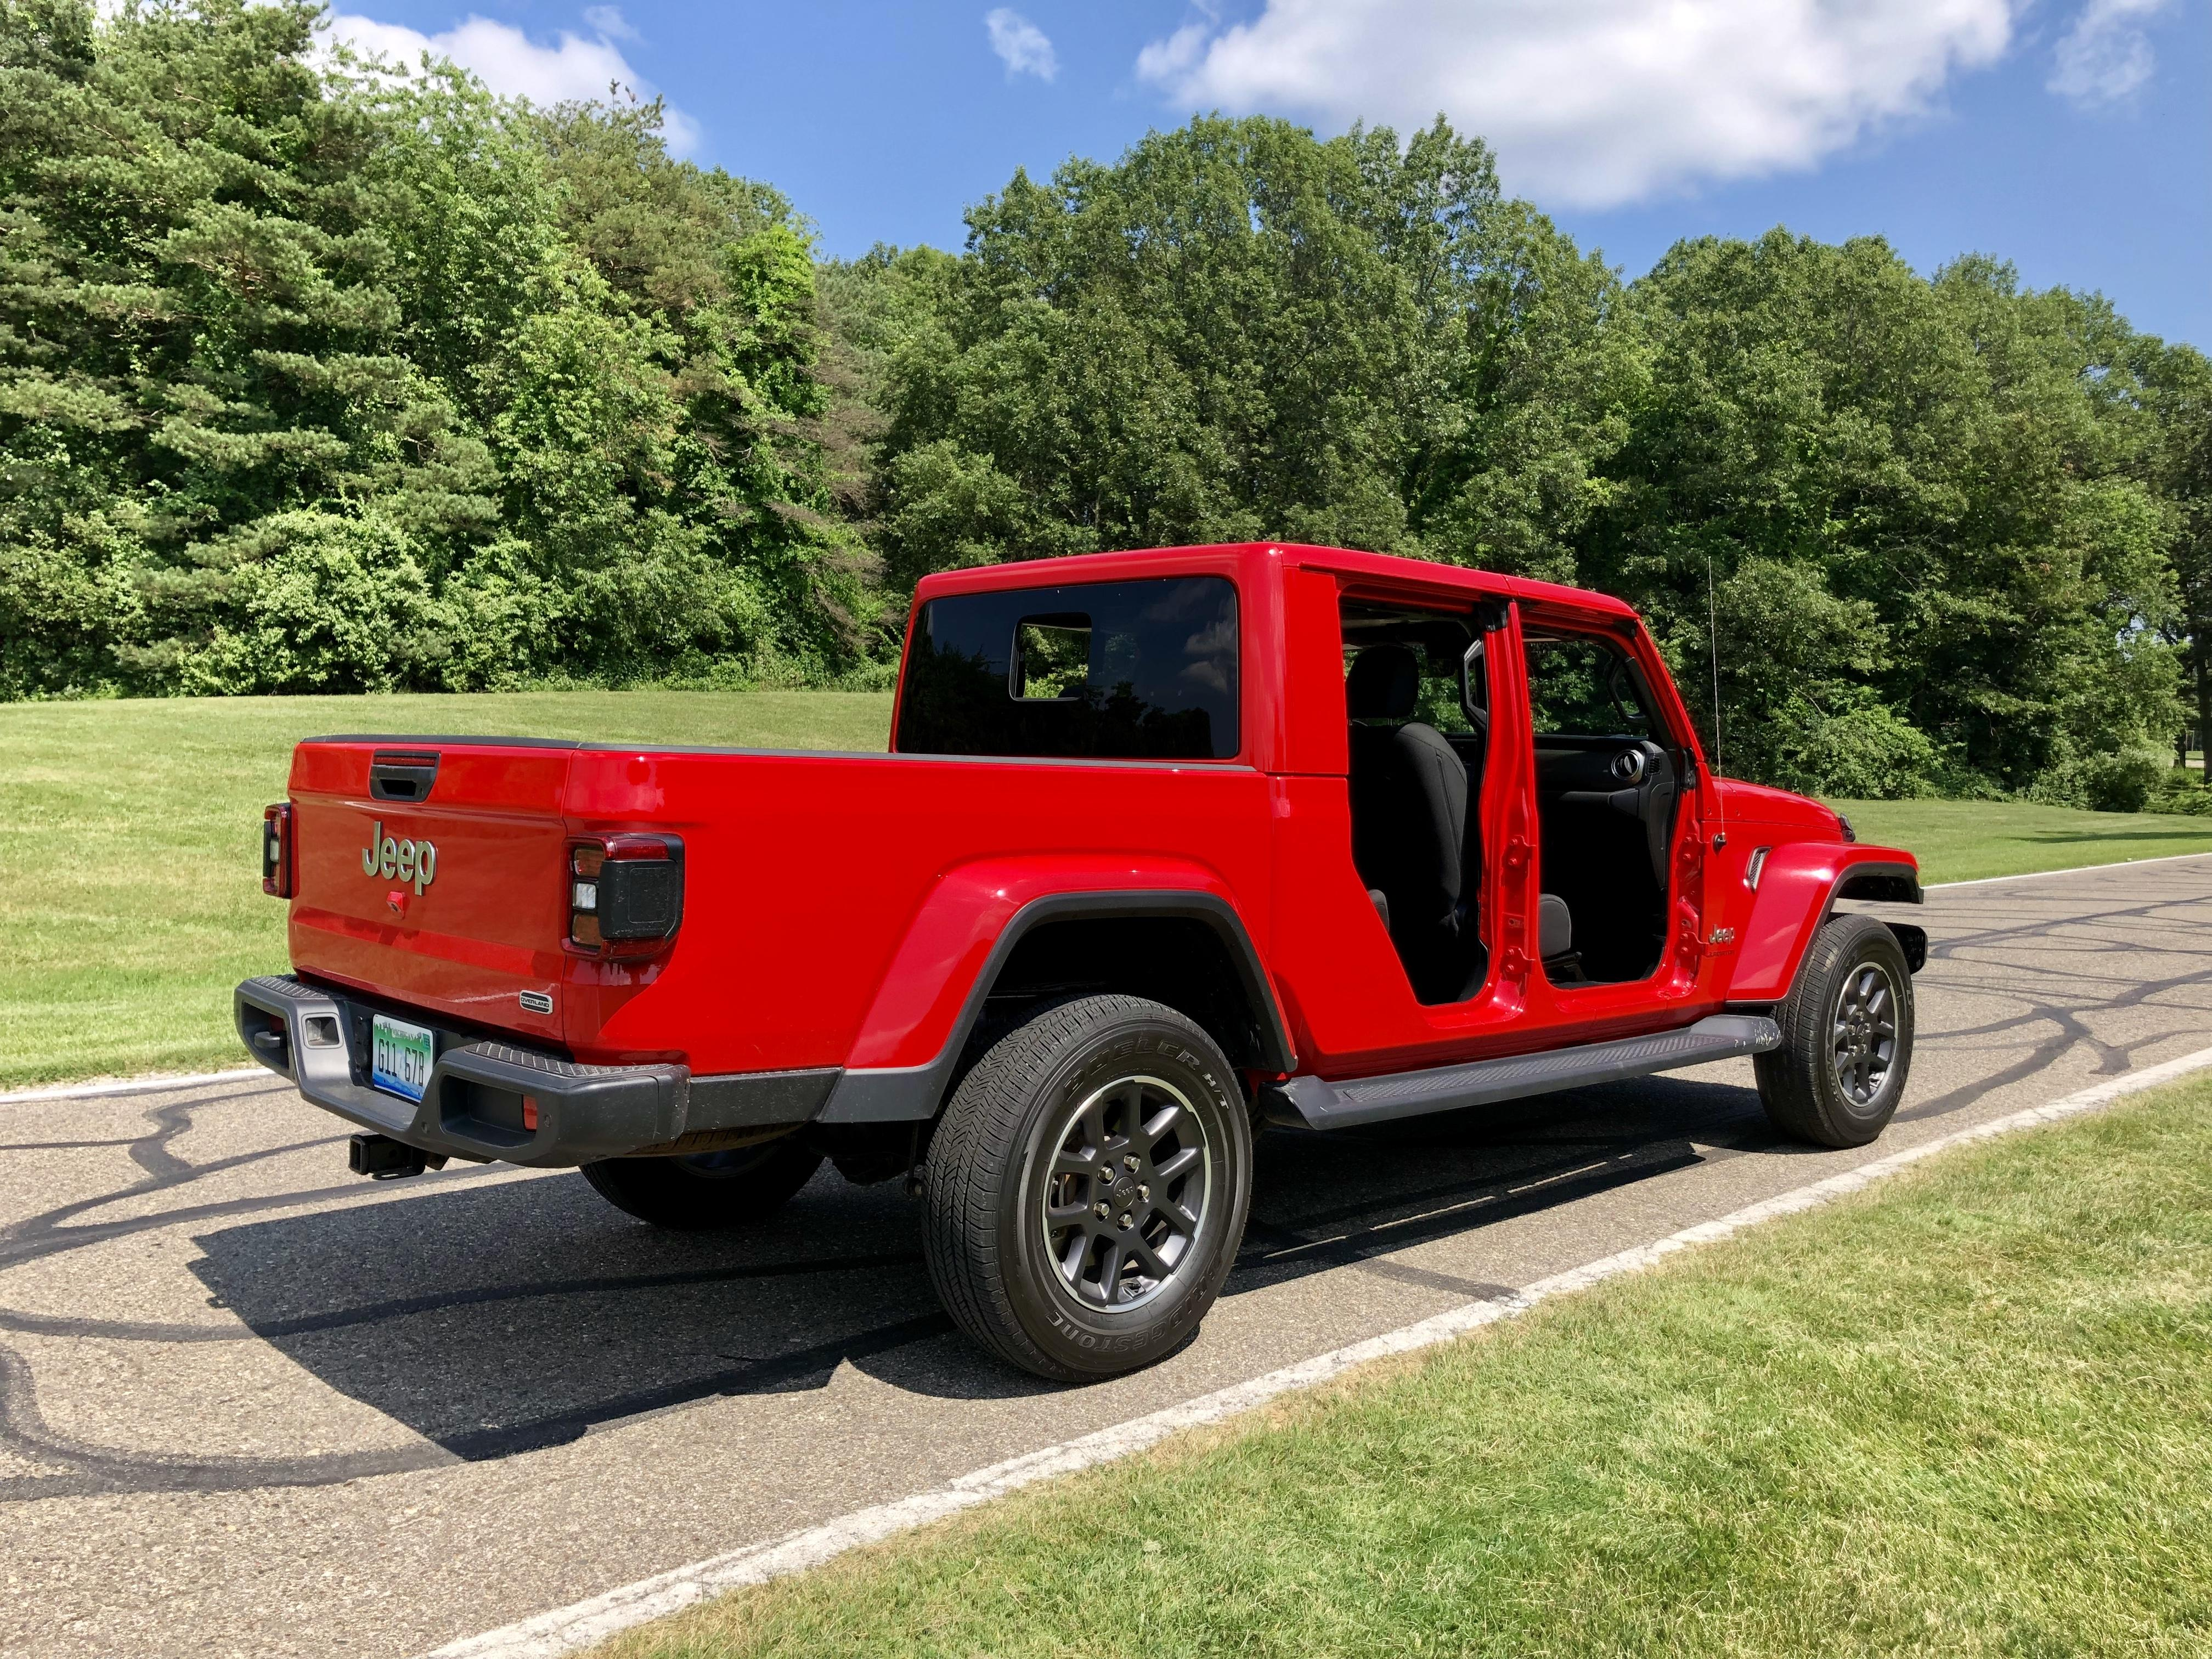 2020 Jeep Gladiator Overland - rear 3/4 view